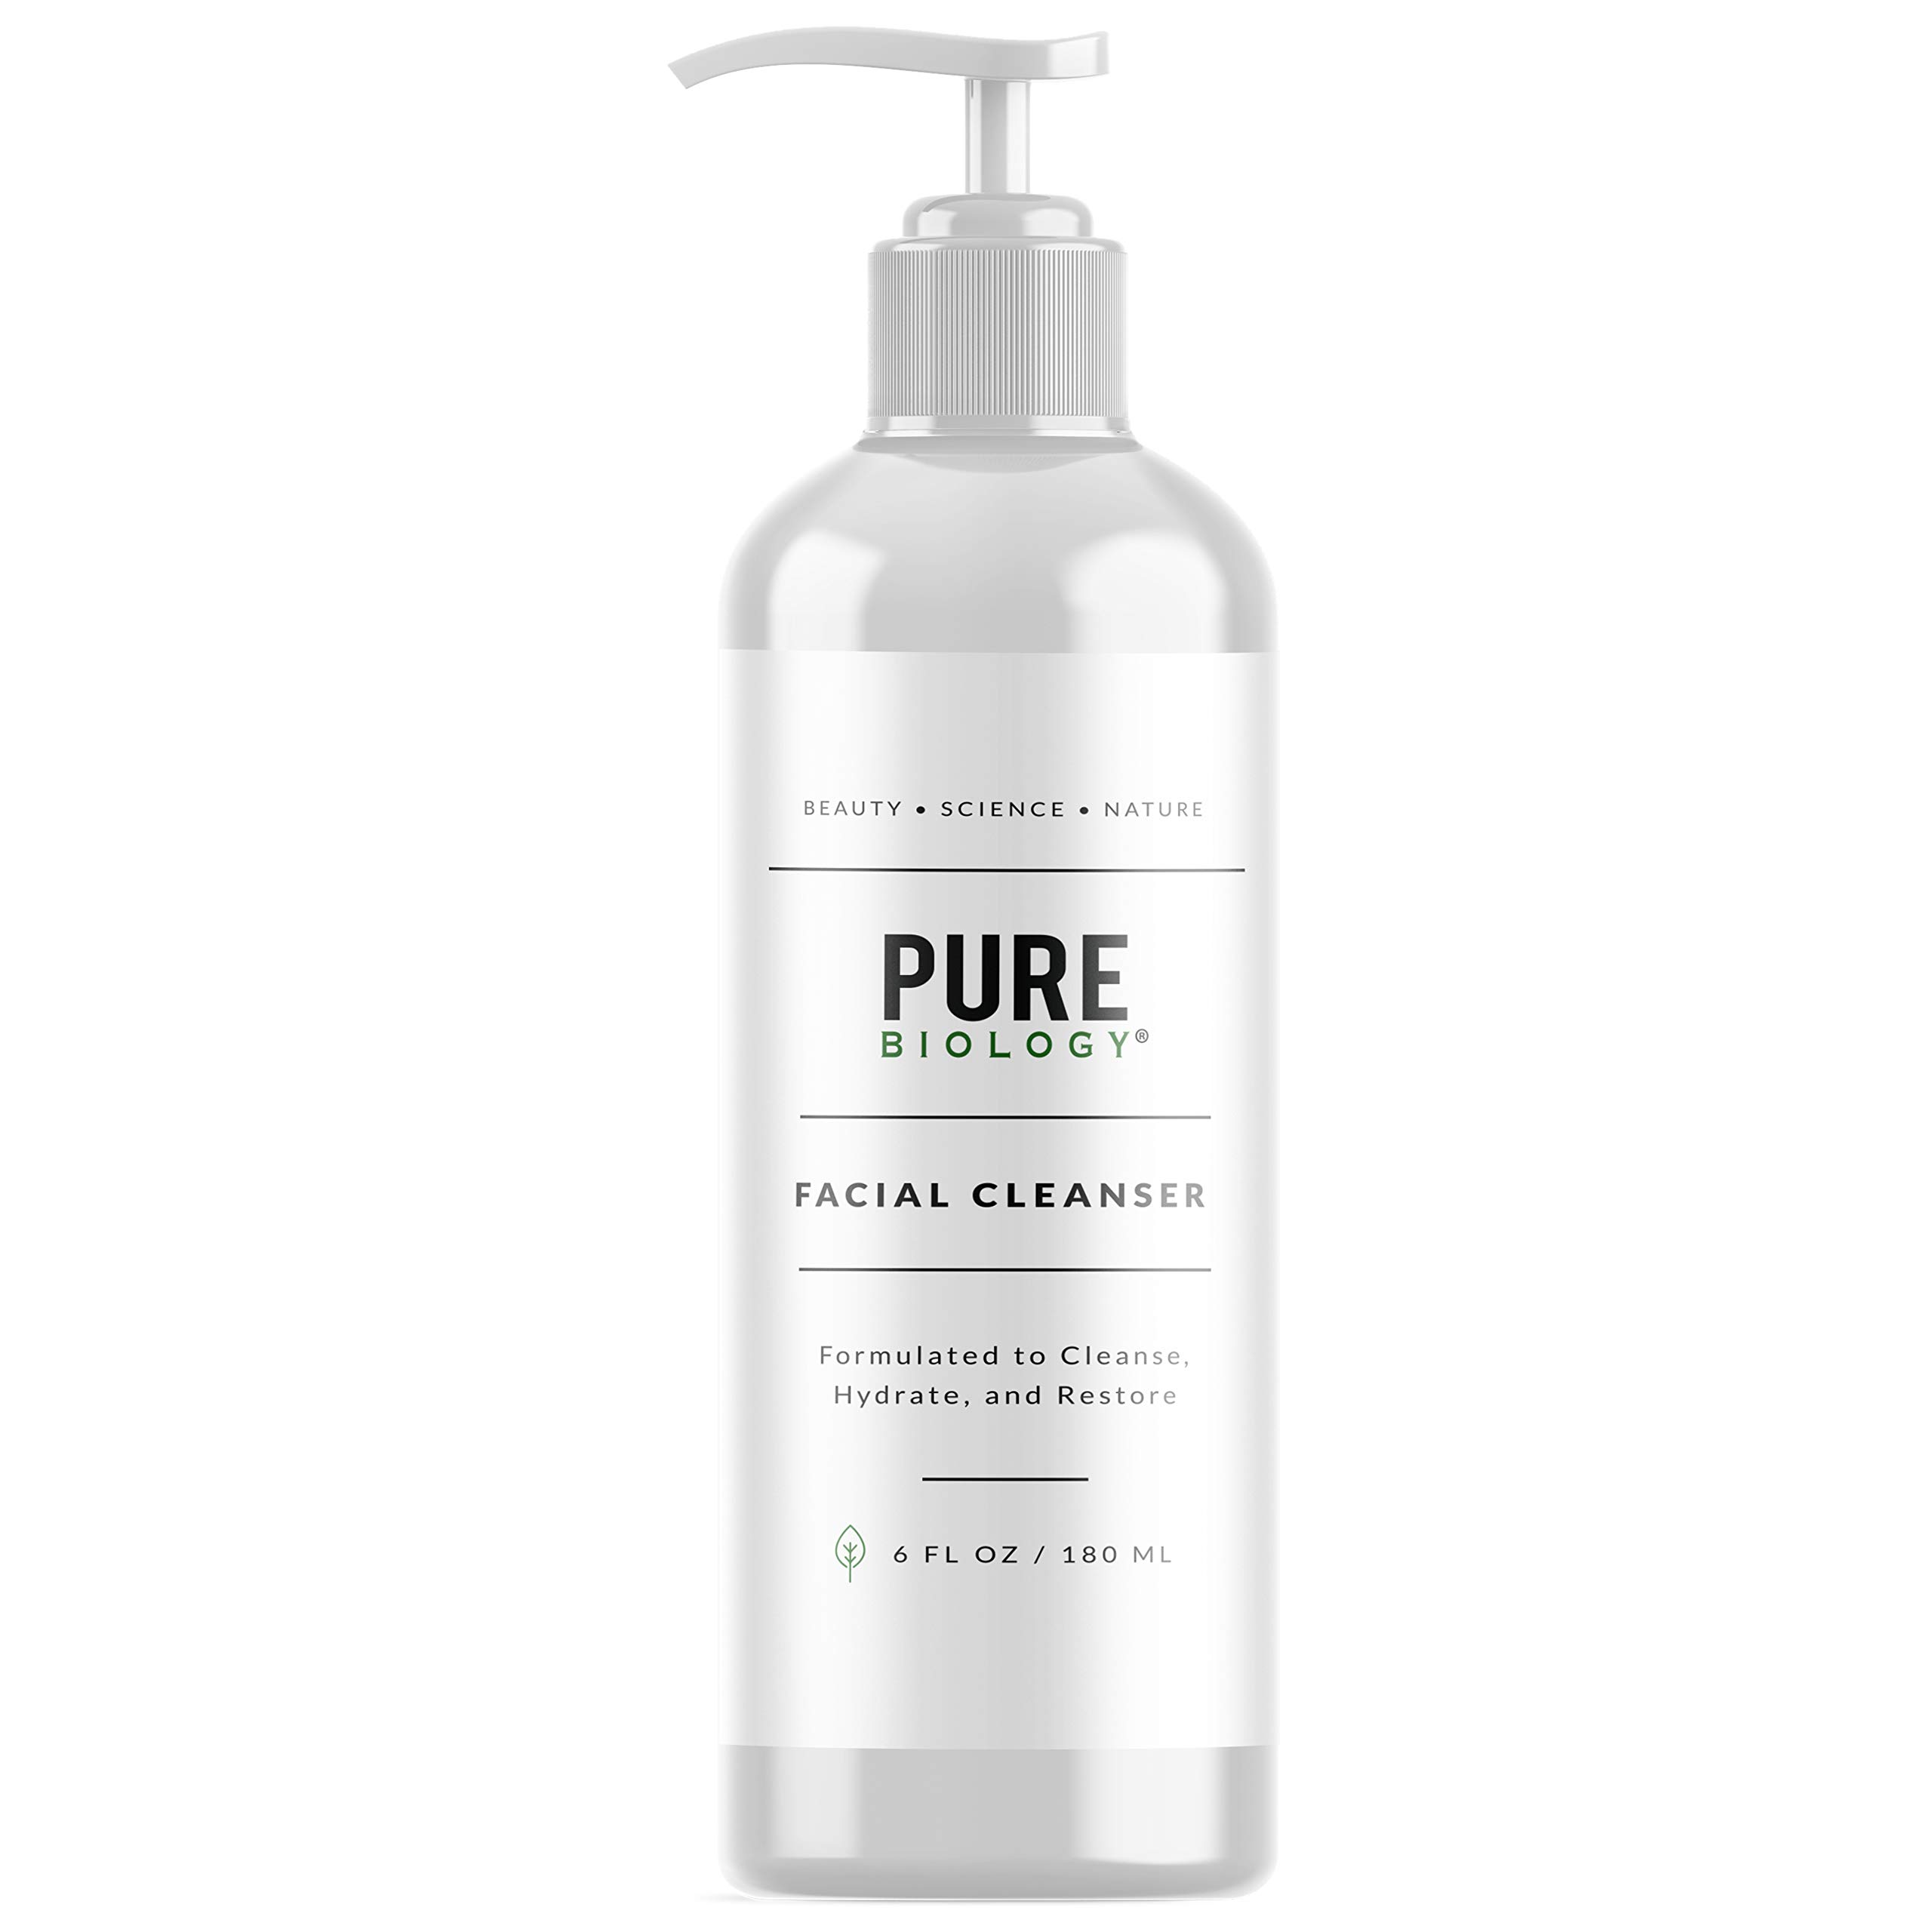 Pure Biology Facial Cleanser with Hyaluronic Acid & Breakthrough Anti Aging Complex to Minimize Pores, Fill Deep Wrinkles & Brighten Complexion for Men & Women of All Skin Types, 6oz by Pure Biology